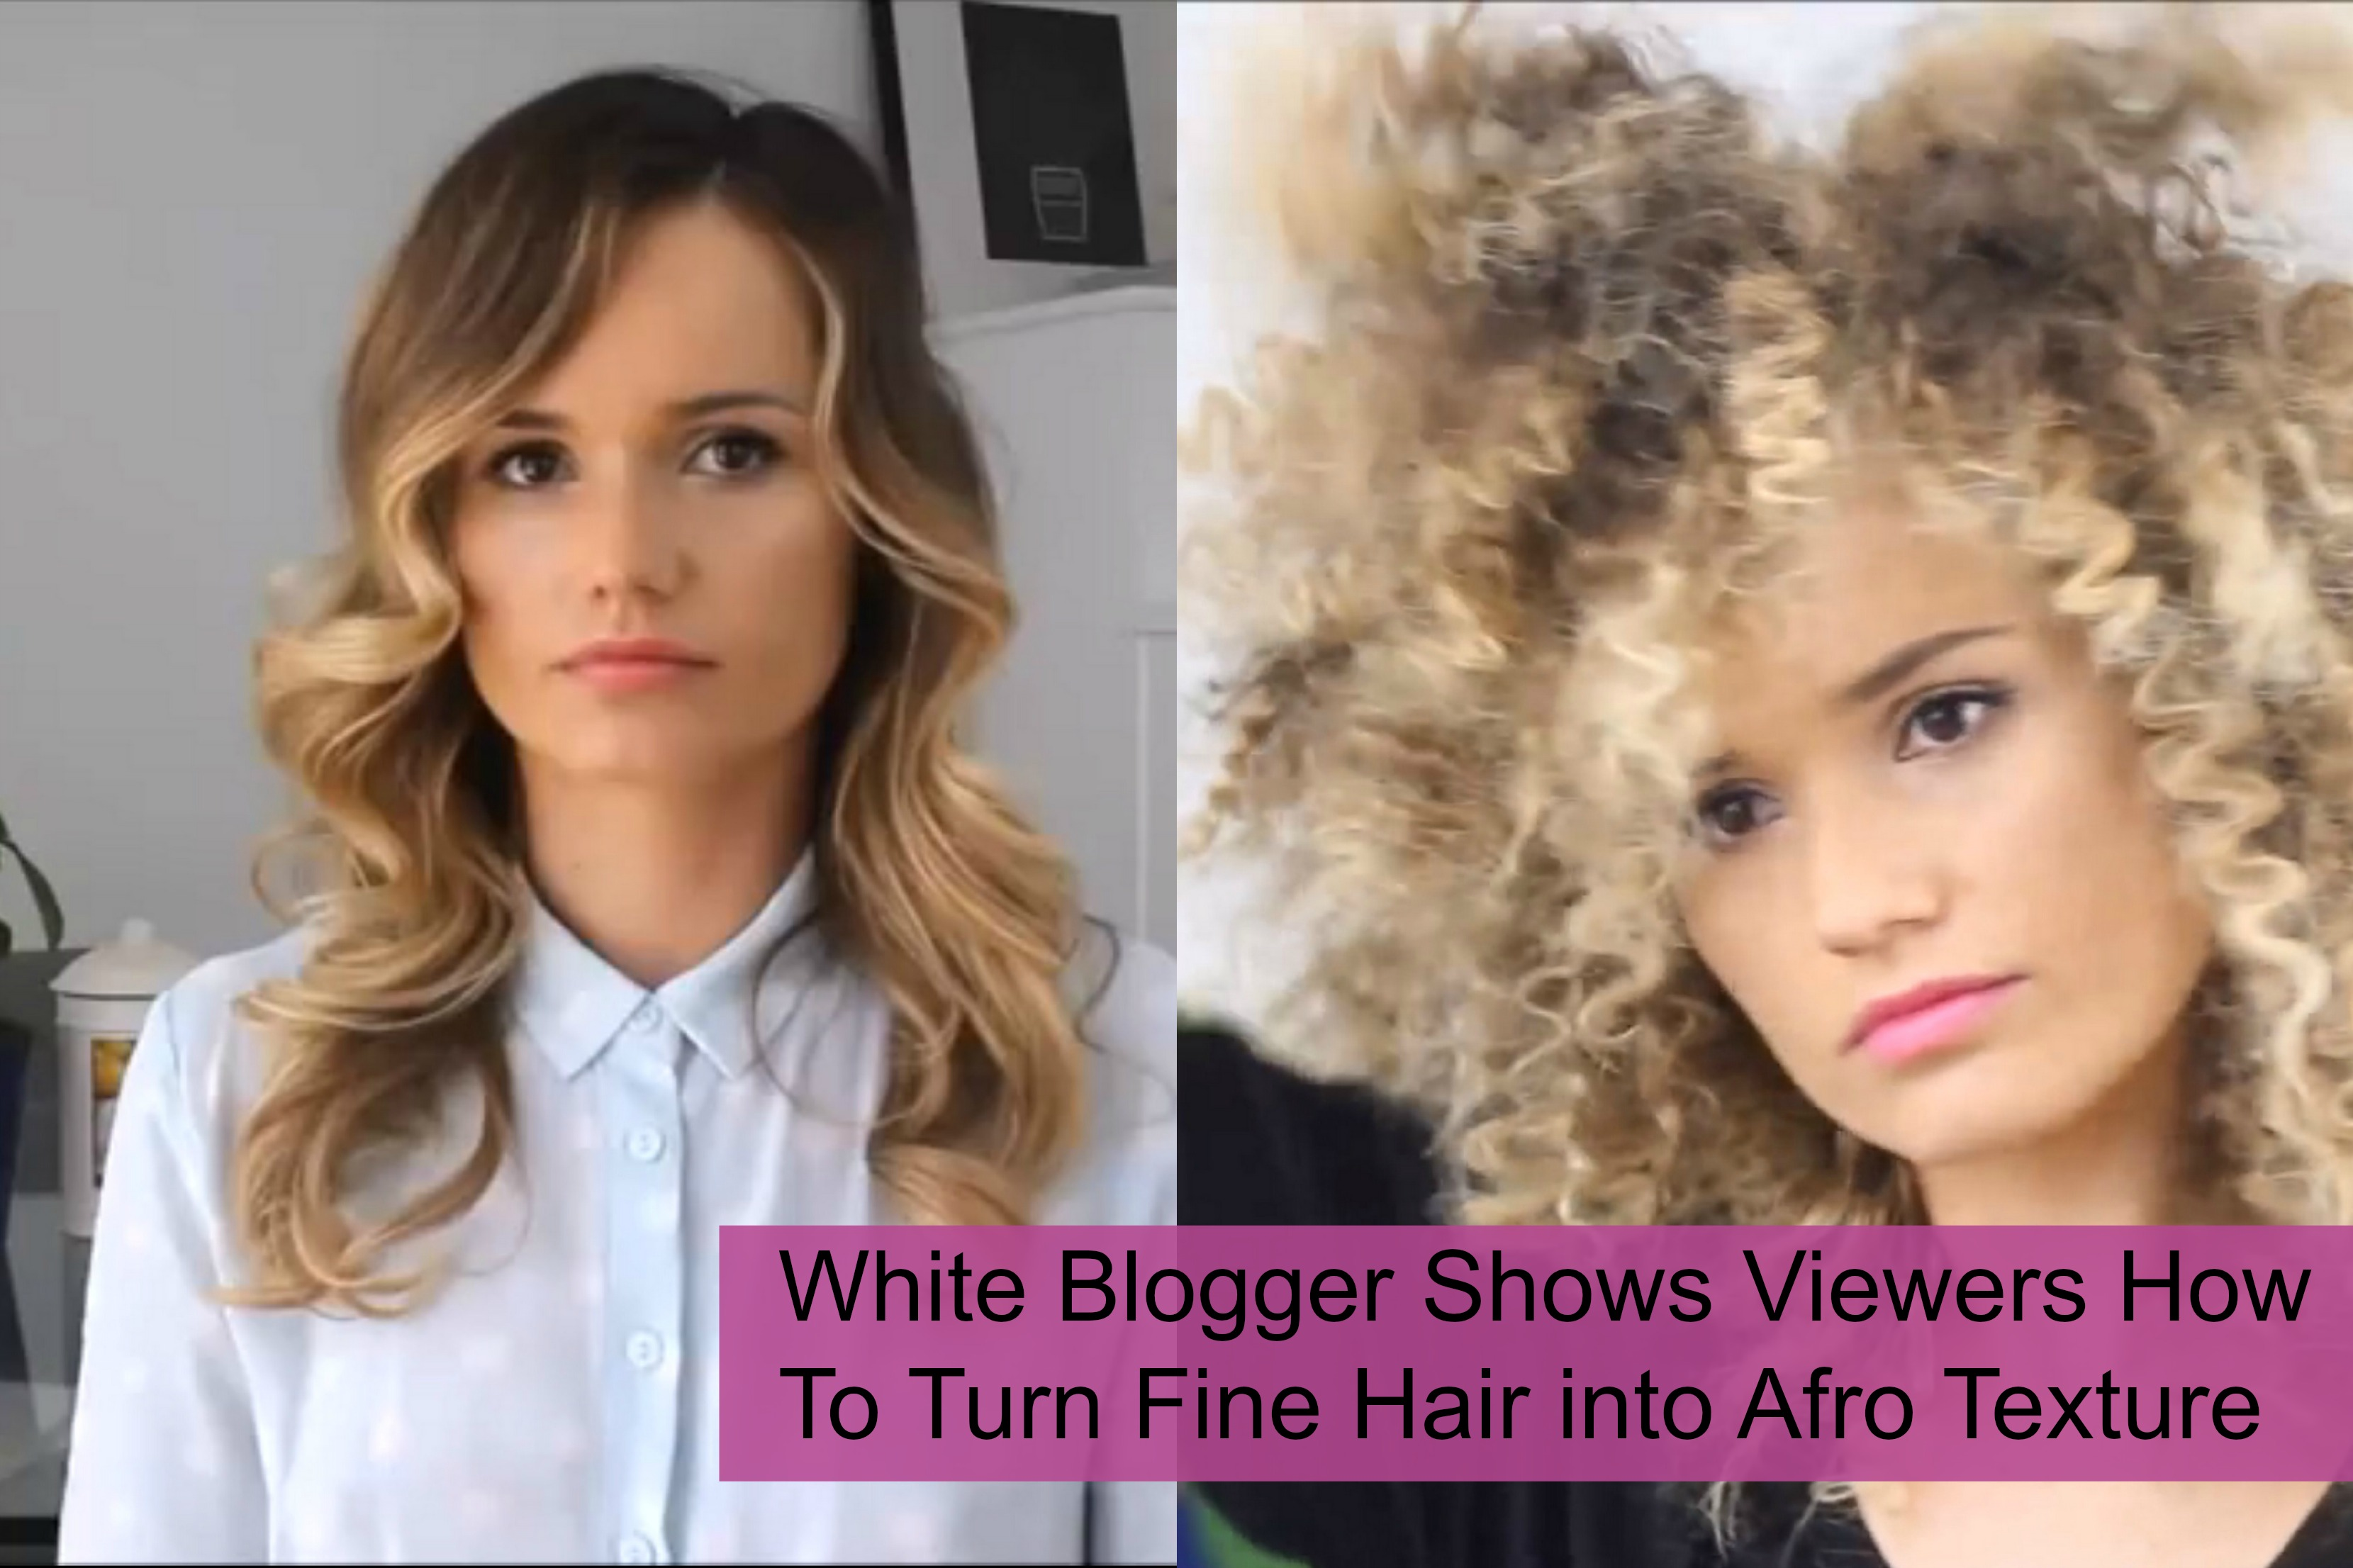 One Of The Great Features Being African Decent Is Our Hair Texture It Makes Us Unique To Different Races But What If This Feature Can Be